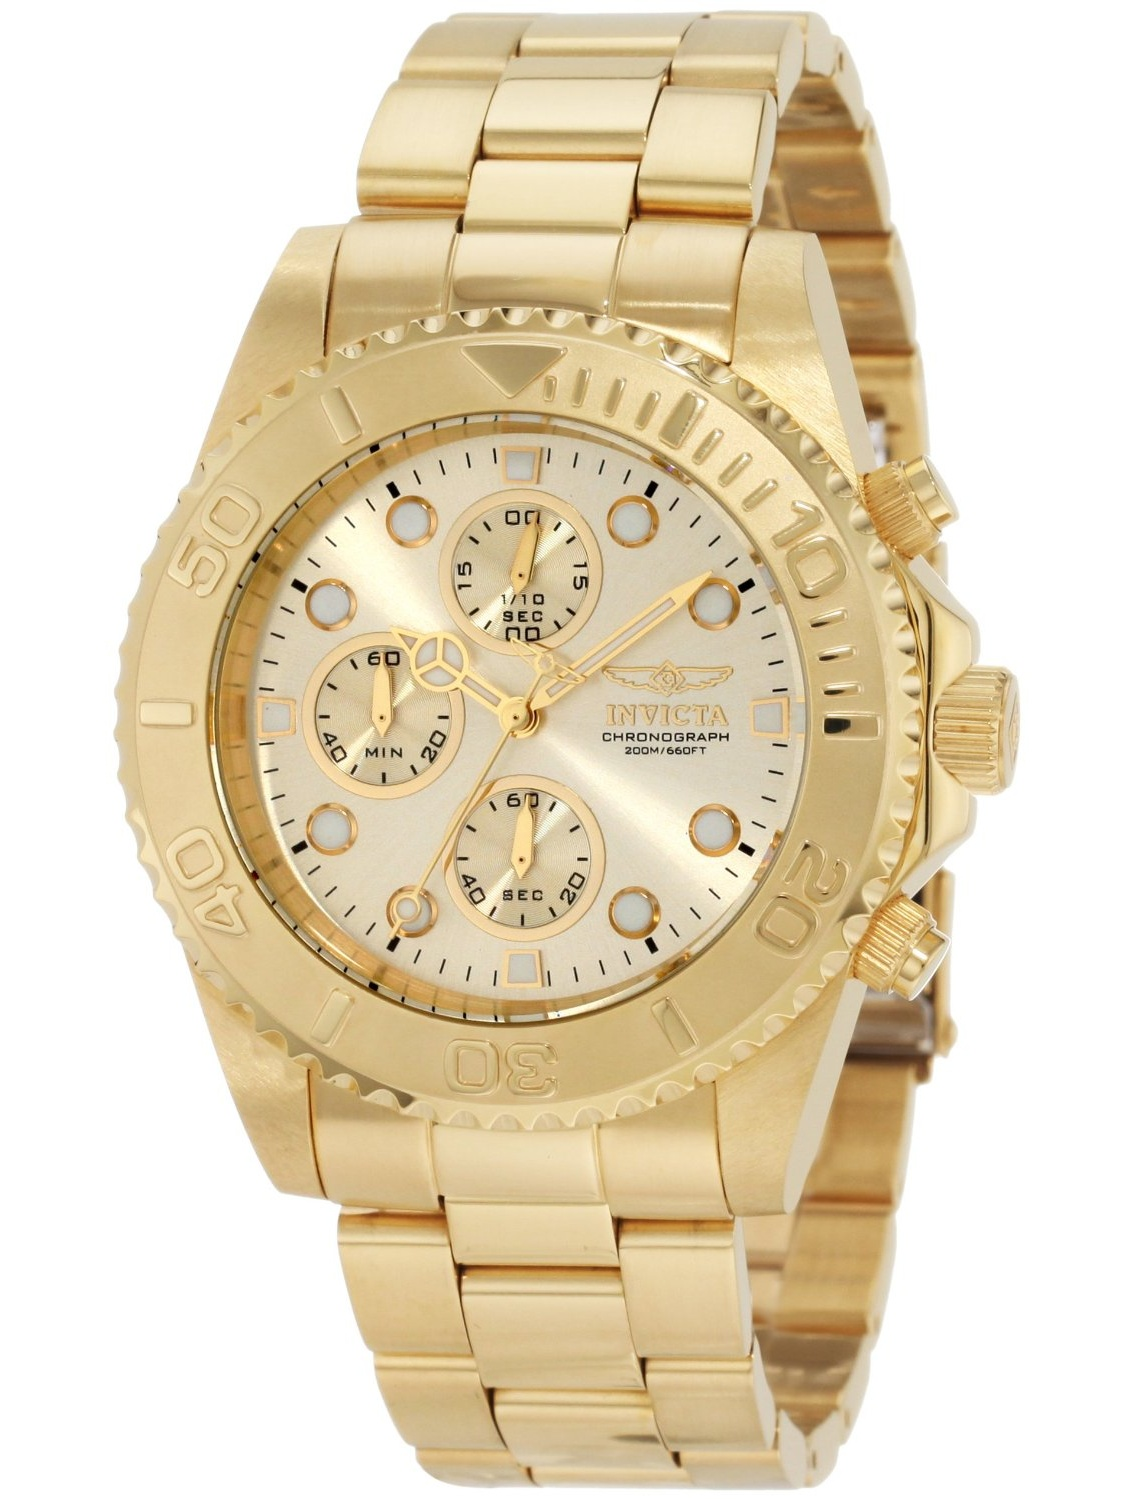 1774 Men's Pro Diver Gold Tone Stainless Steel Chronograph Dive Watch